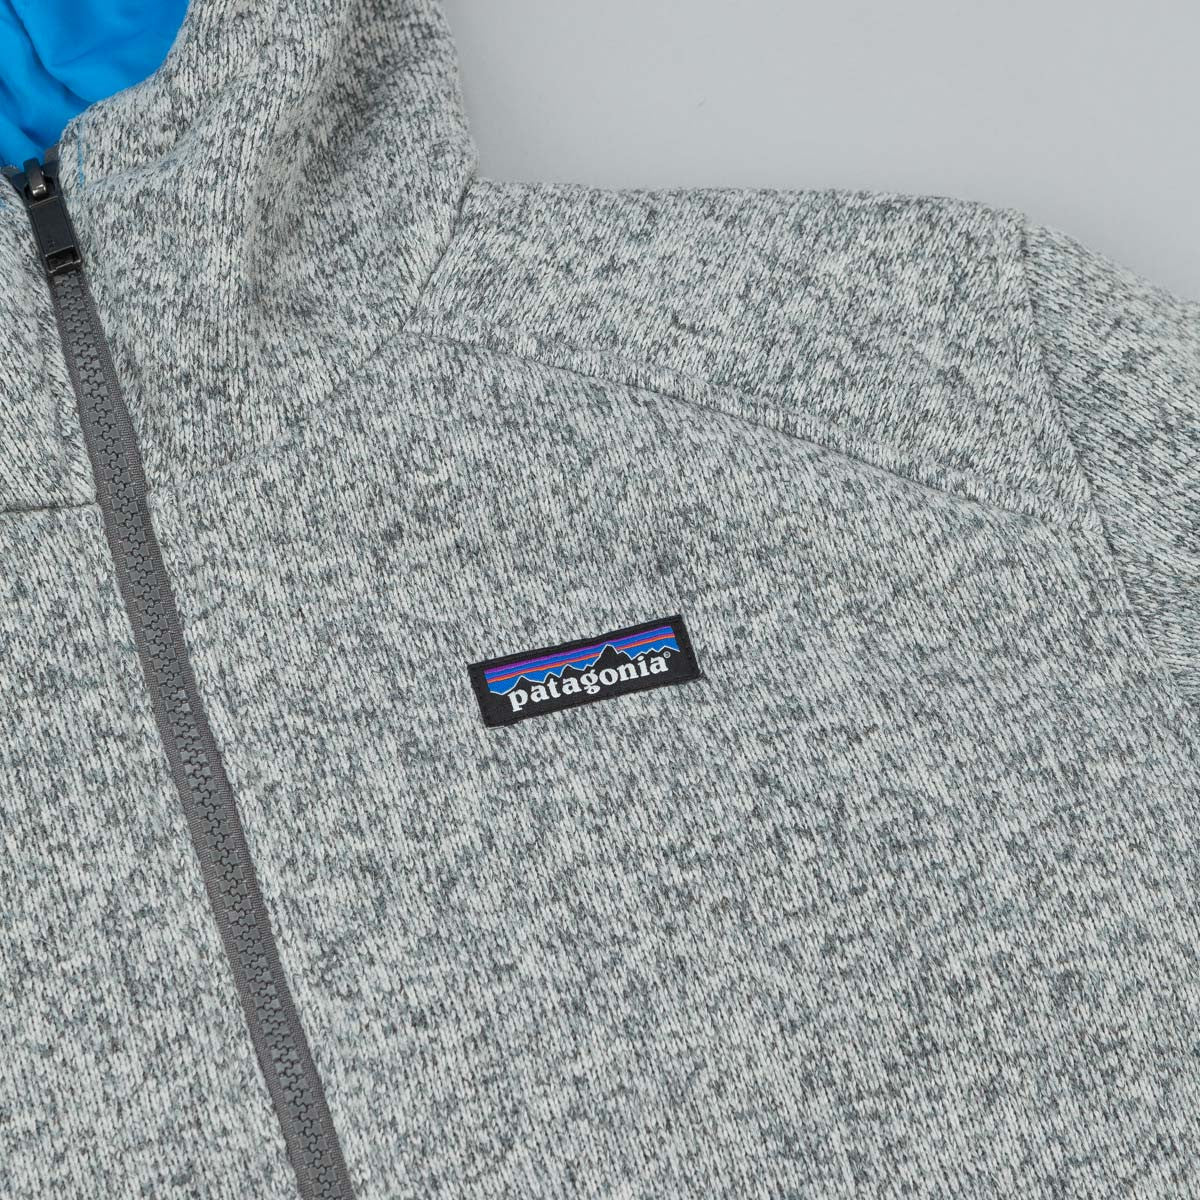 Patagonia Insulated Better Sweater Hooded Fleece - Stonewash